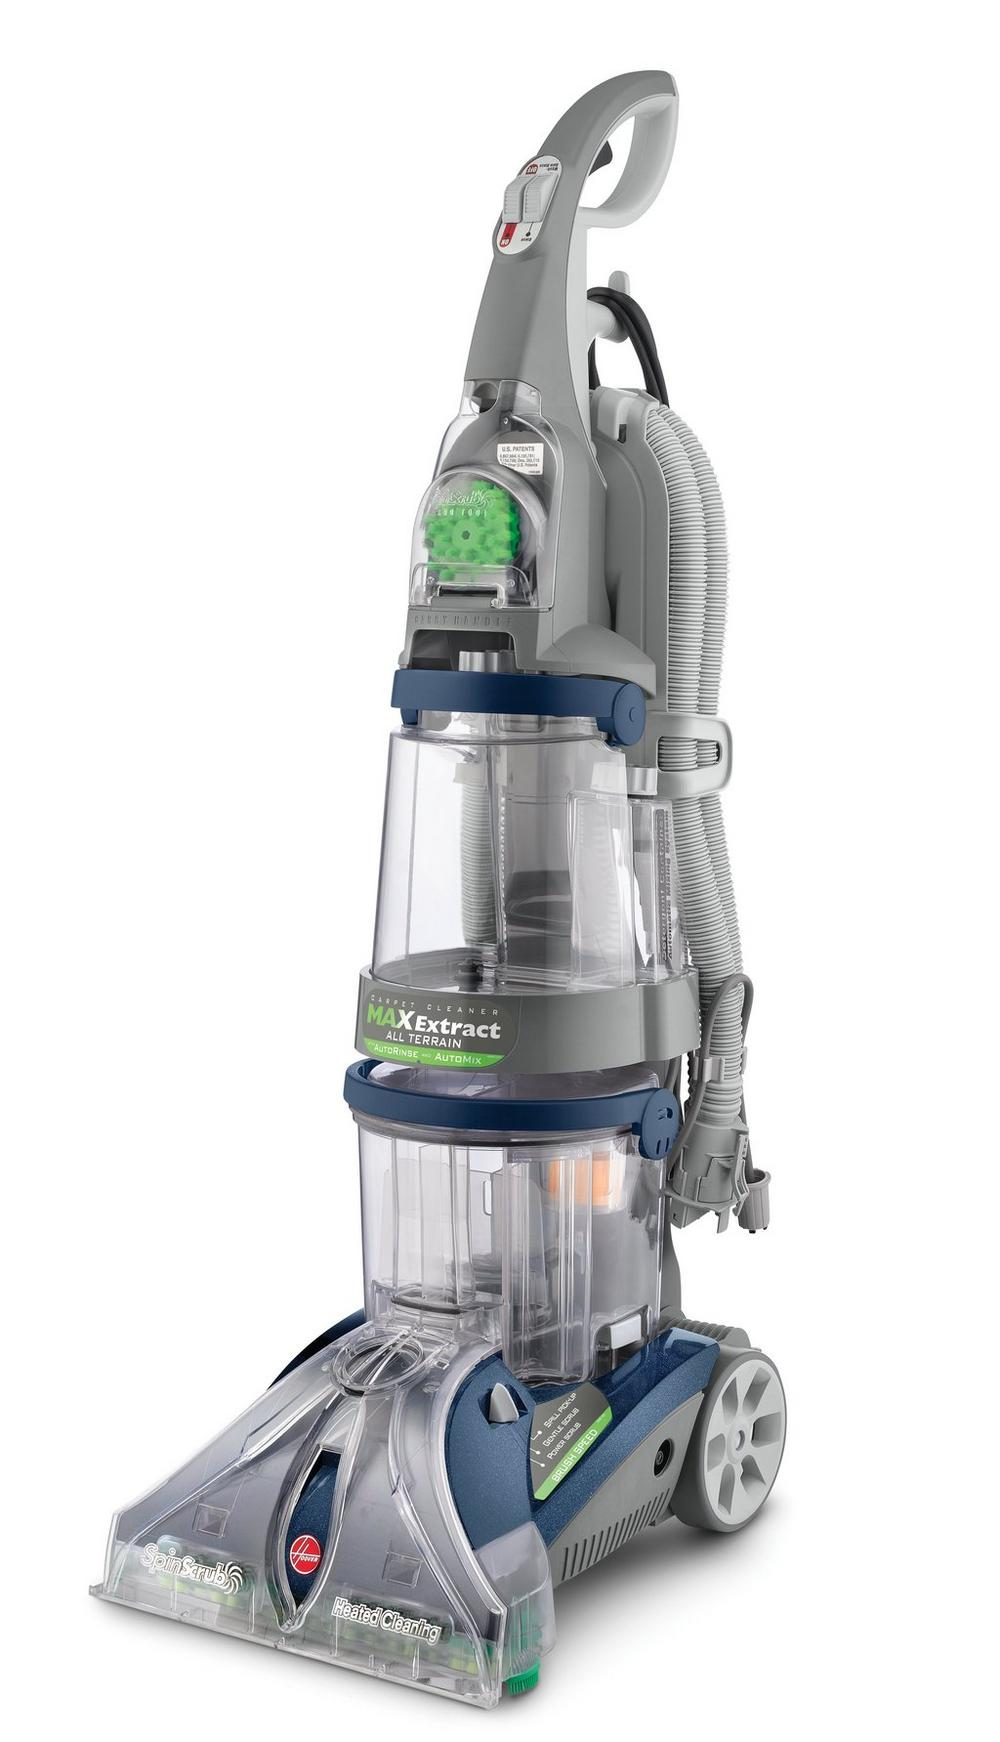 Max Extract Carpet Cleaner2